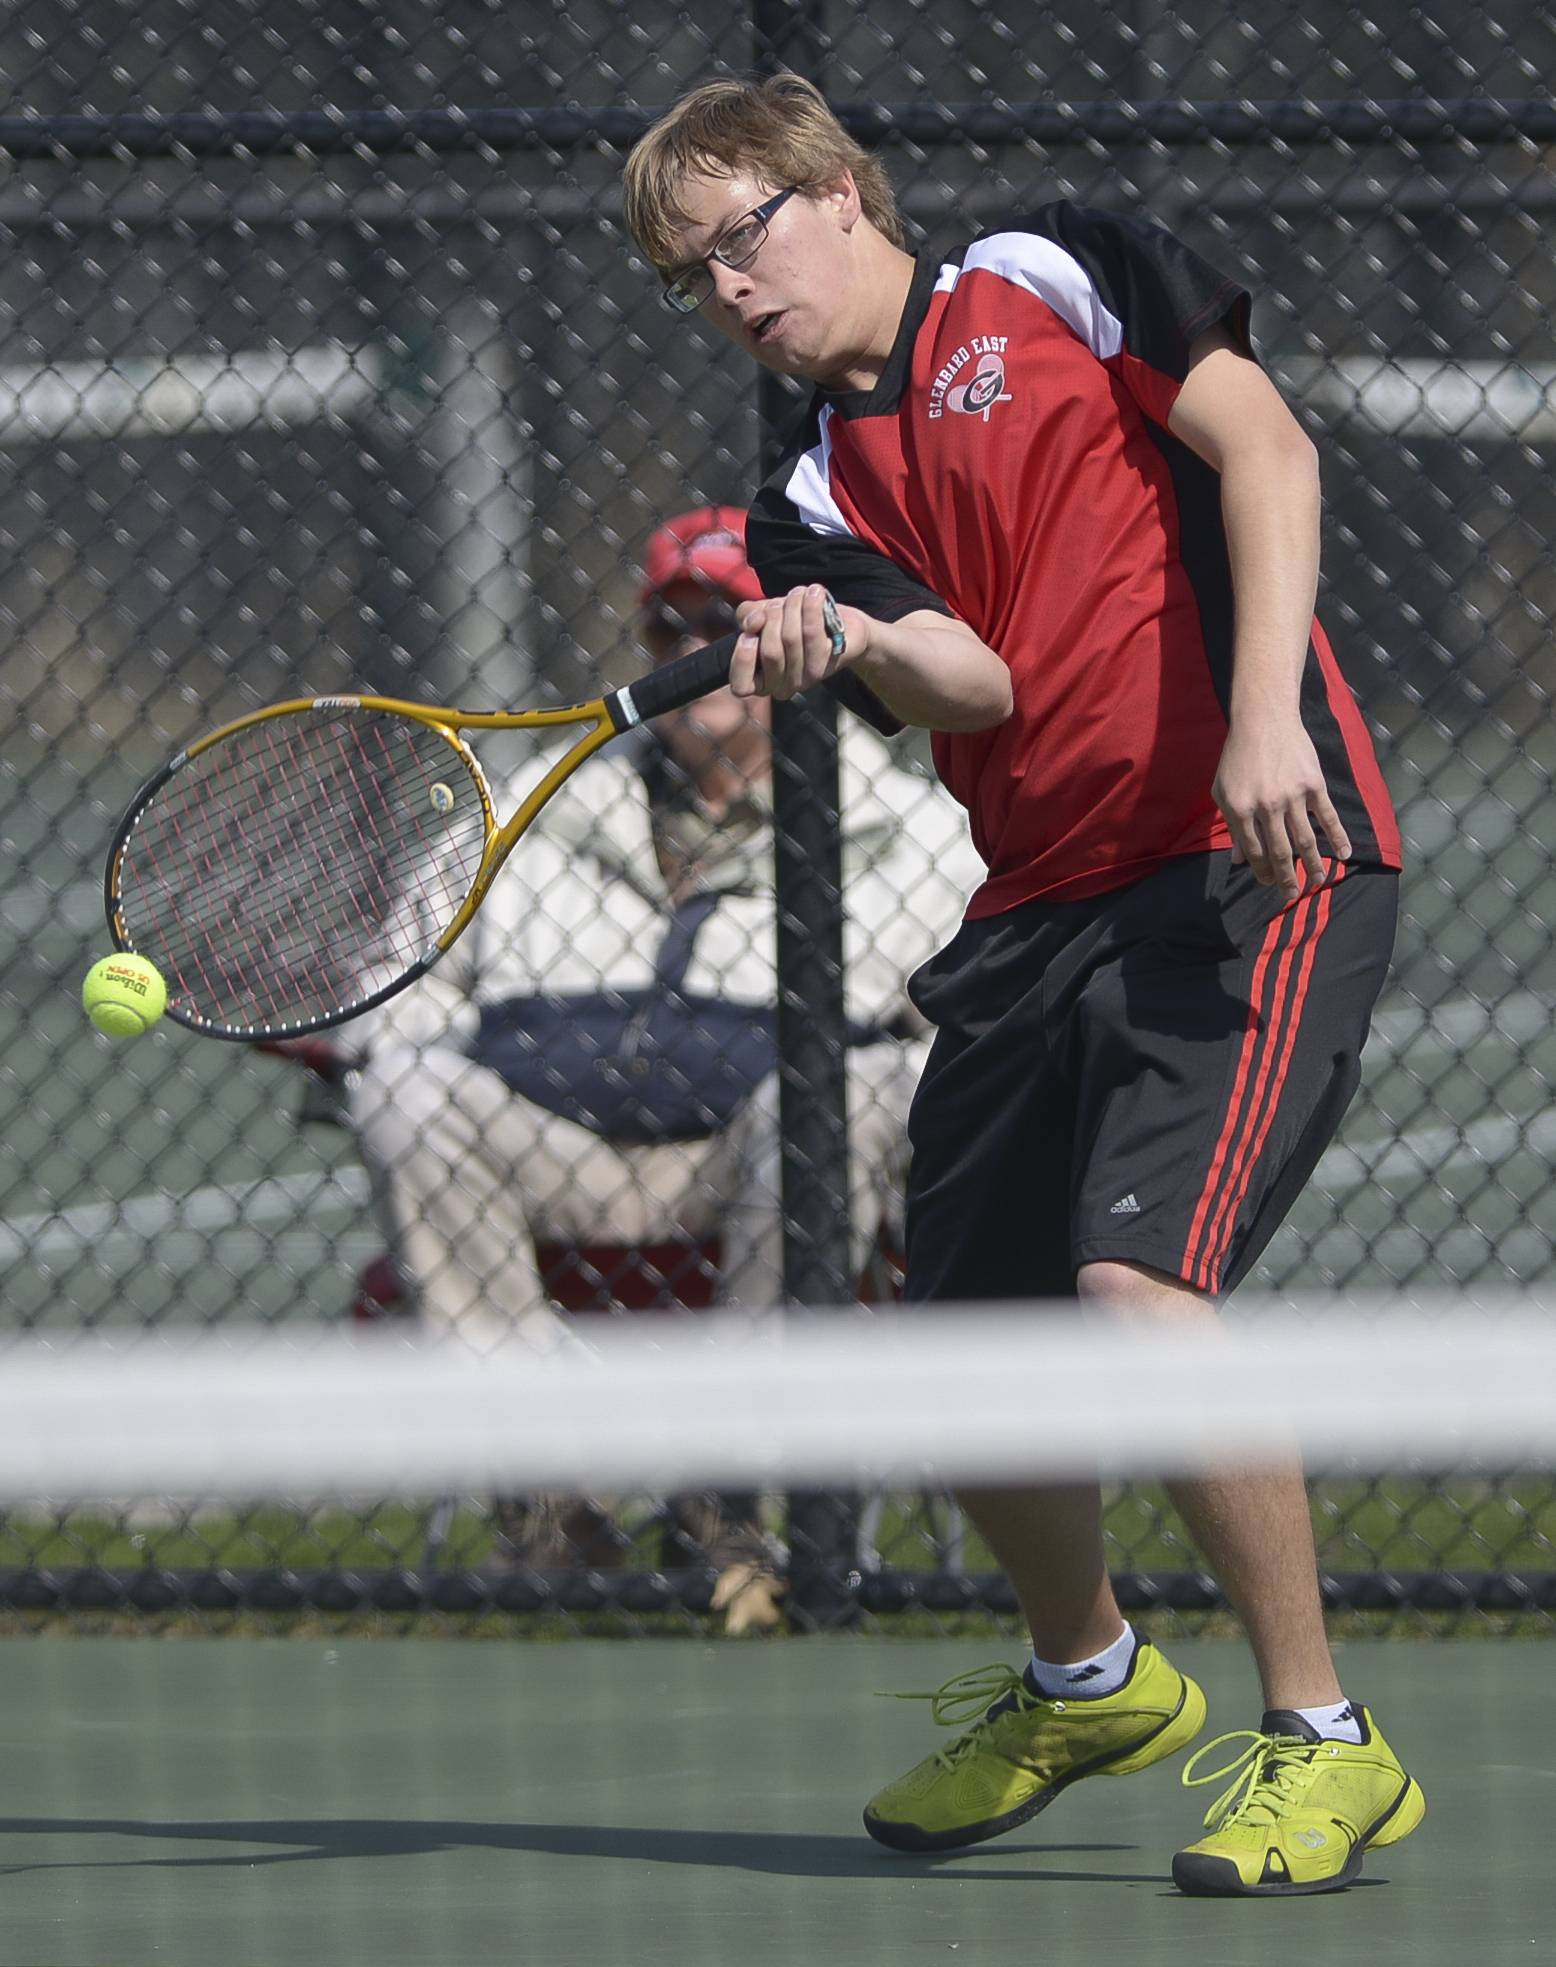 Glenbard East's Nathan Delawder completes against Glenbard South's Joe Meade during the Glenbard West boys tennis invitational.